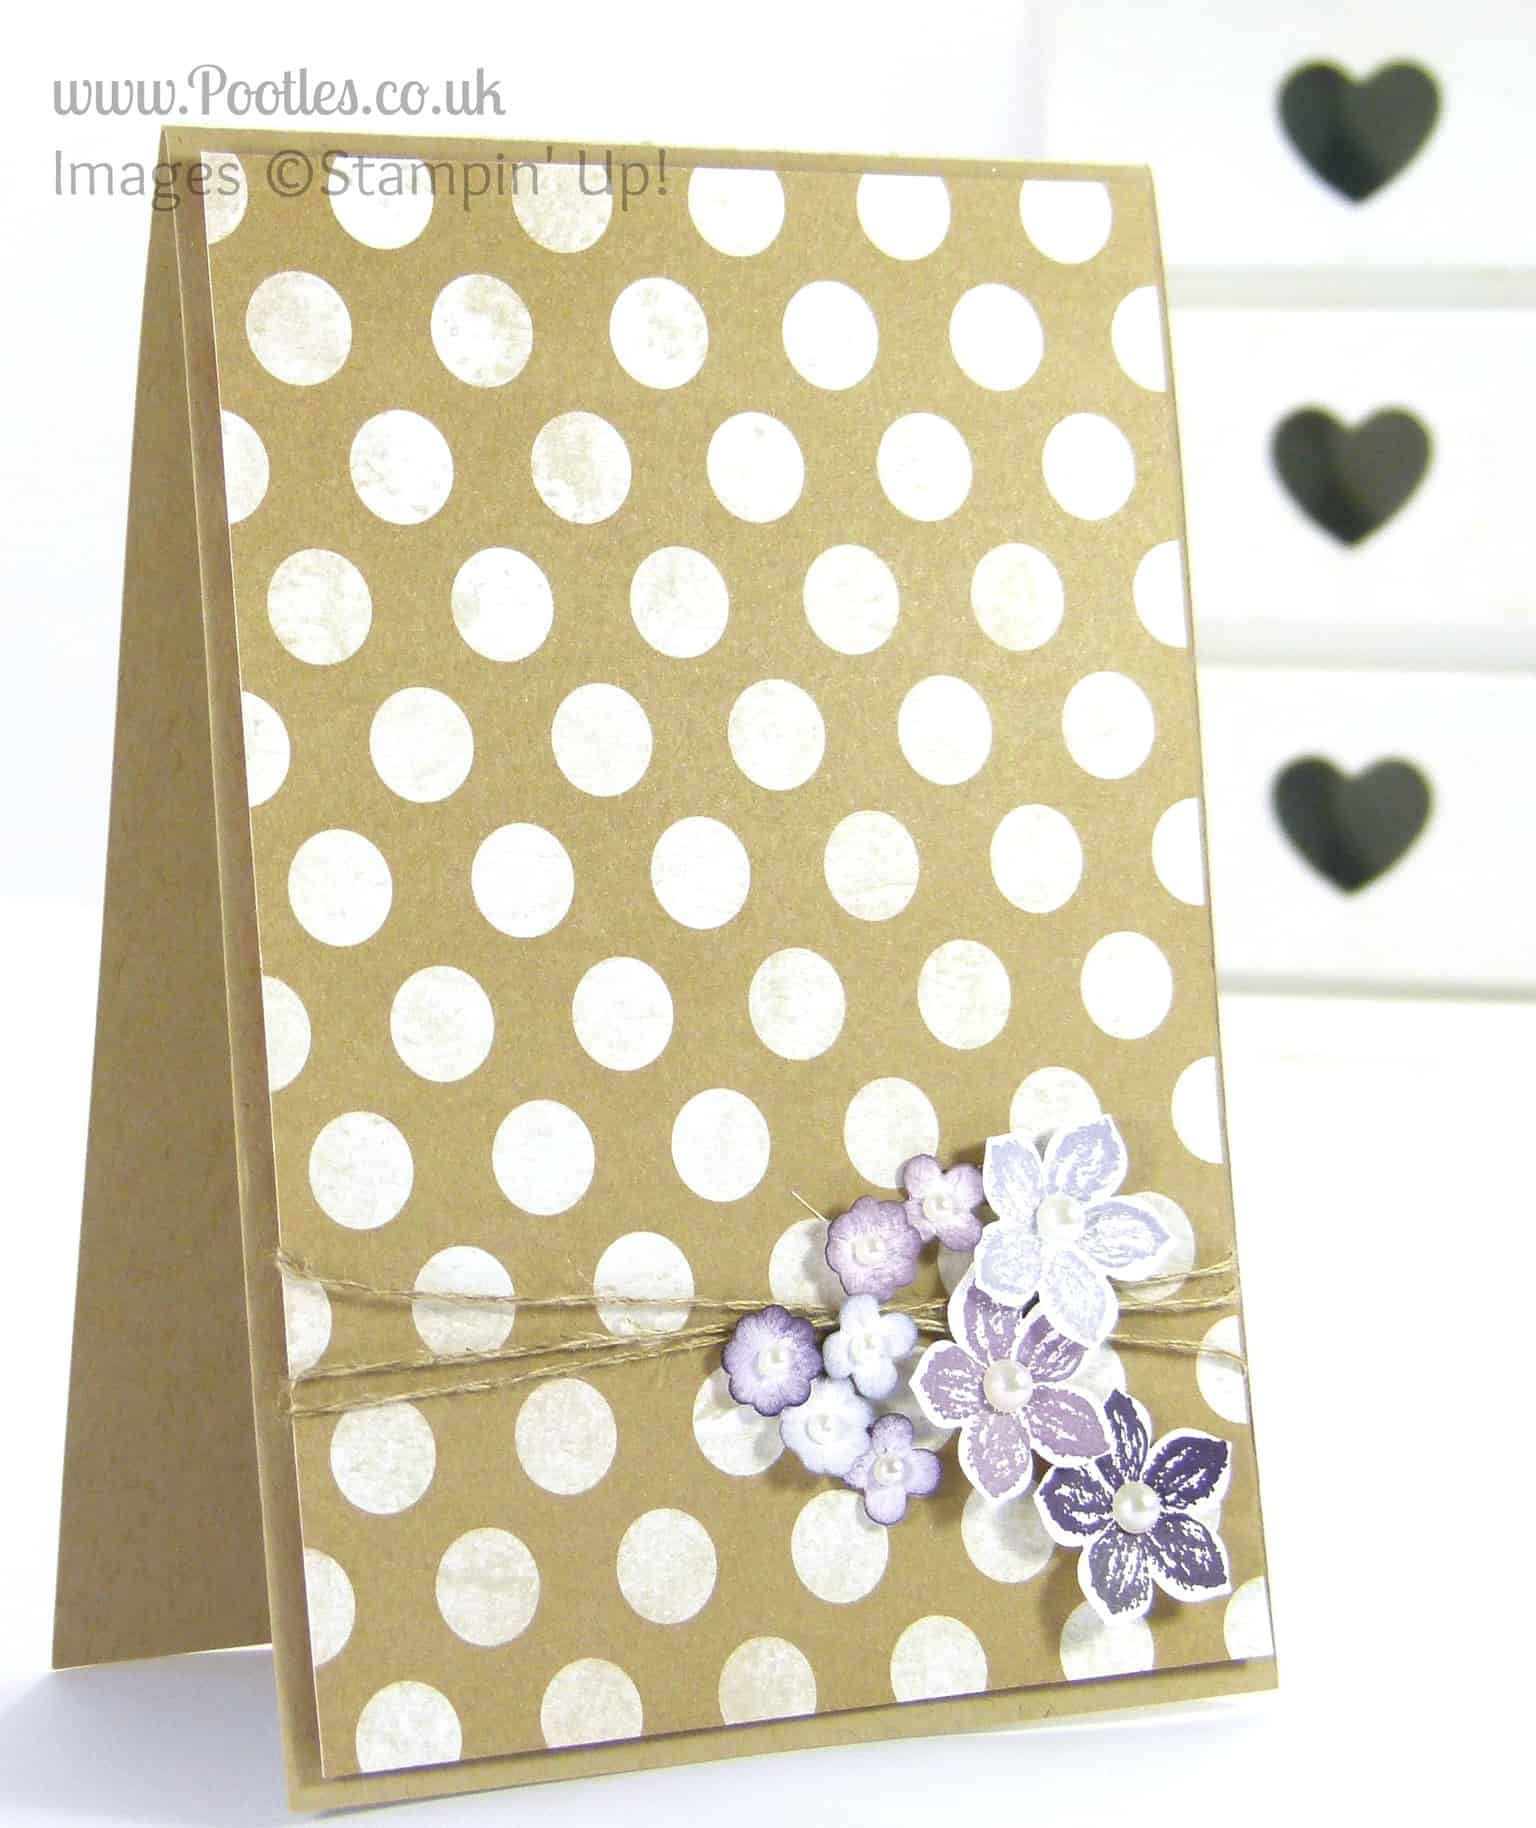 Stampin' Up! UK Demonstrator Pootles - Fresh Prints and Flowers